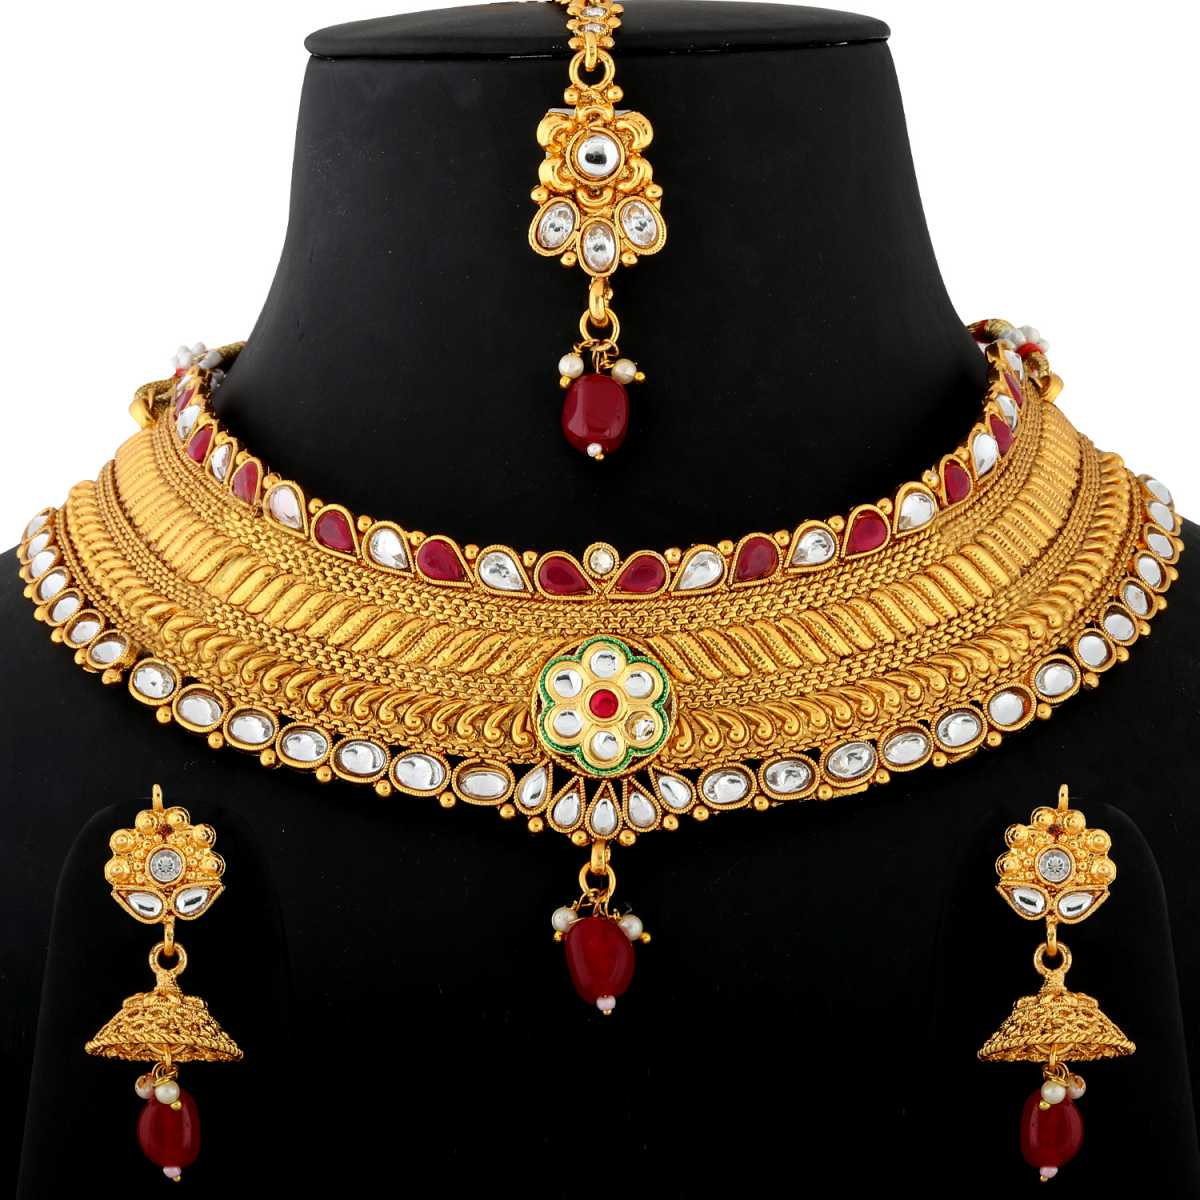 Silver Shine Gold Plated Choker  Traditional Self Textured Design Kundan Stone Studded with Multi Pearl Drop  Designer Bridal Wedding Necklace jewellery set for Girls And Women